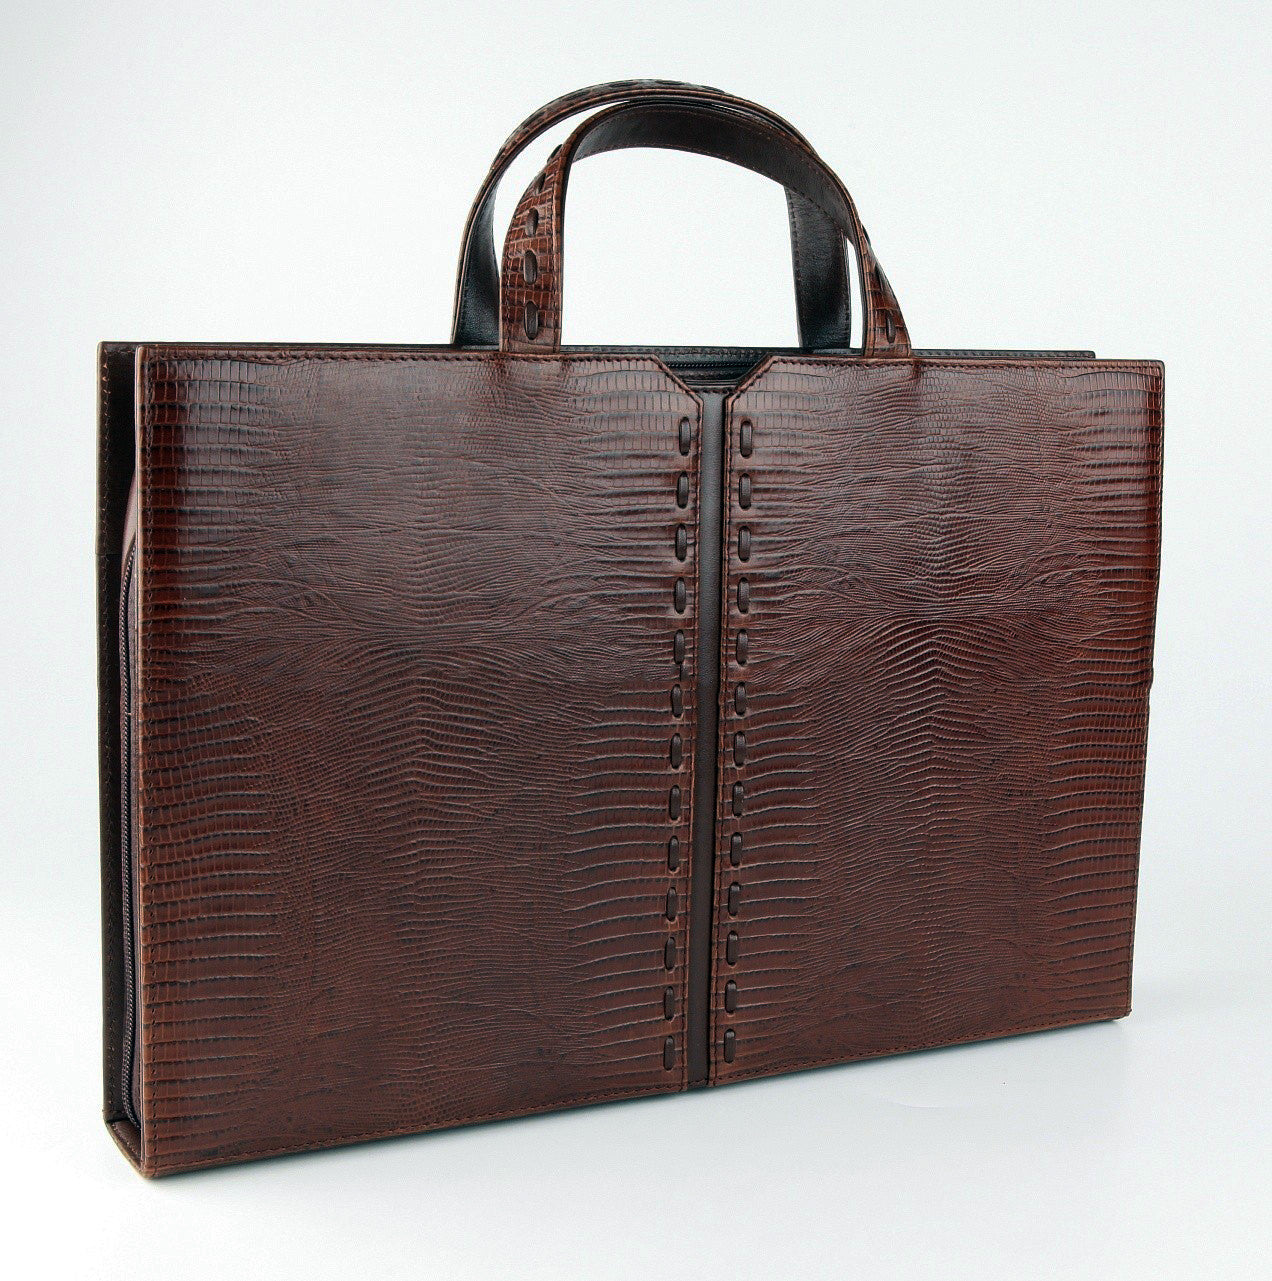 #812 Crocodile Brown, Petek 1855 Briefcase